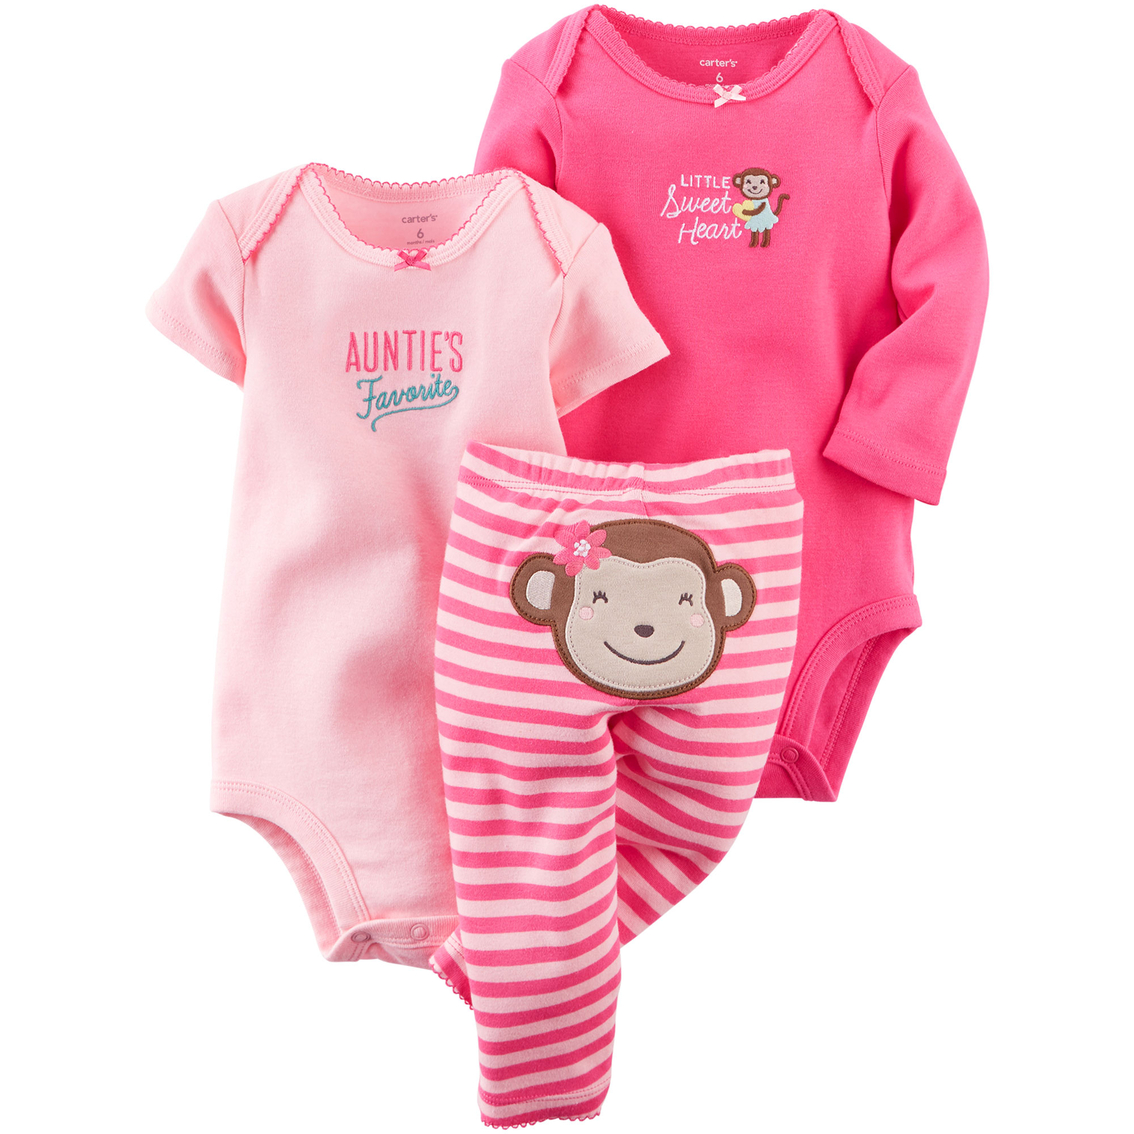 4a00e7f5d Carter's Infant Girls Pink Monkey Turn Me Around Bodysuits and Pants 3 Pc.  Set